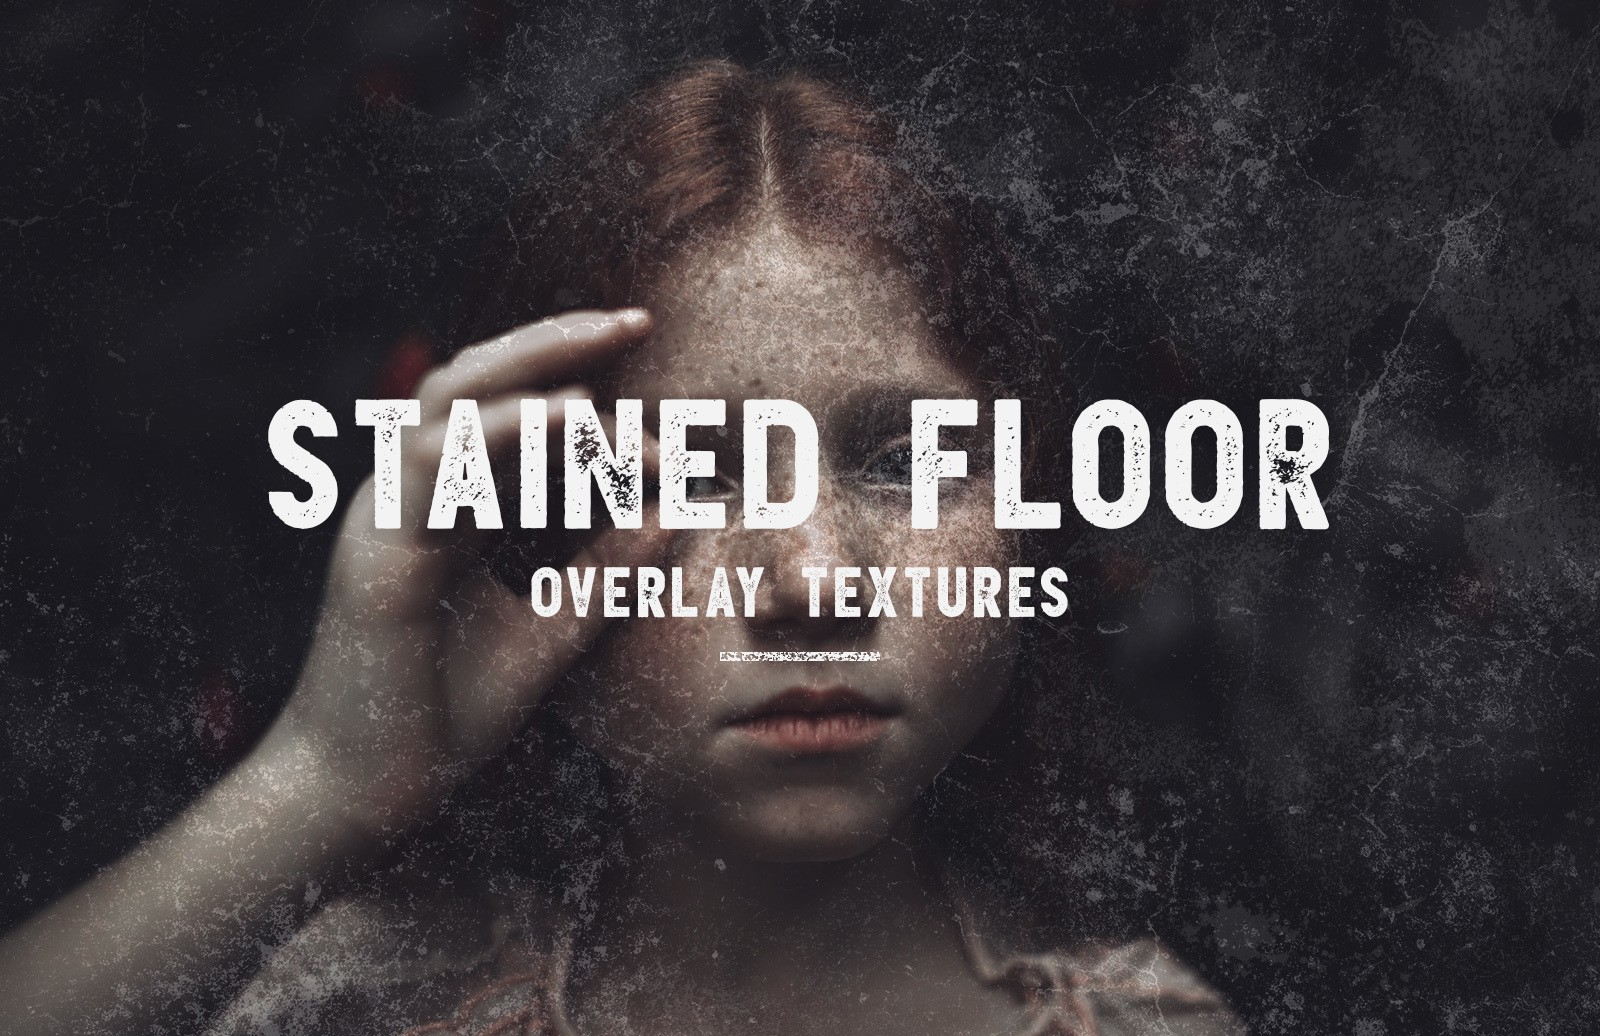 Stained Floor Overlay Textures